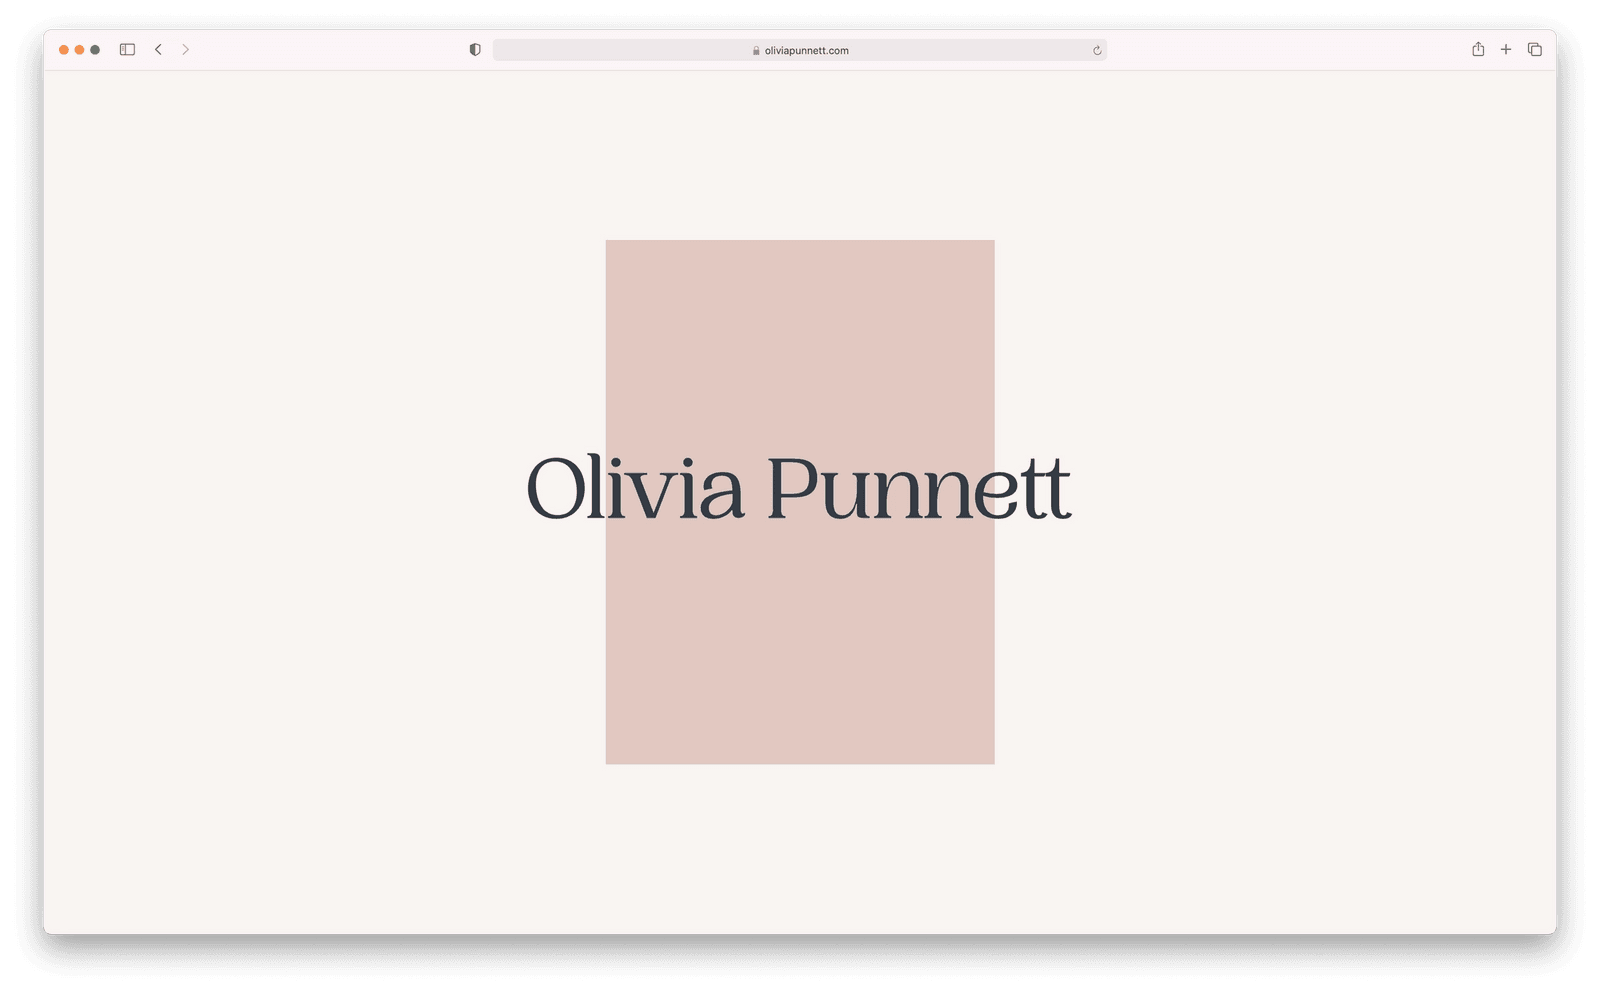 Screenshot of Landing Page for Olivia Punnett's website.